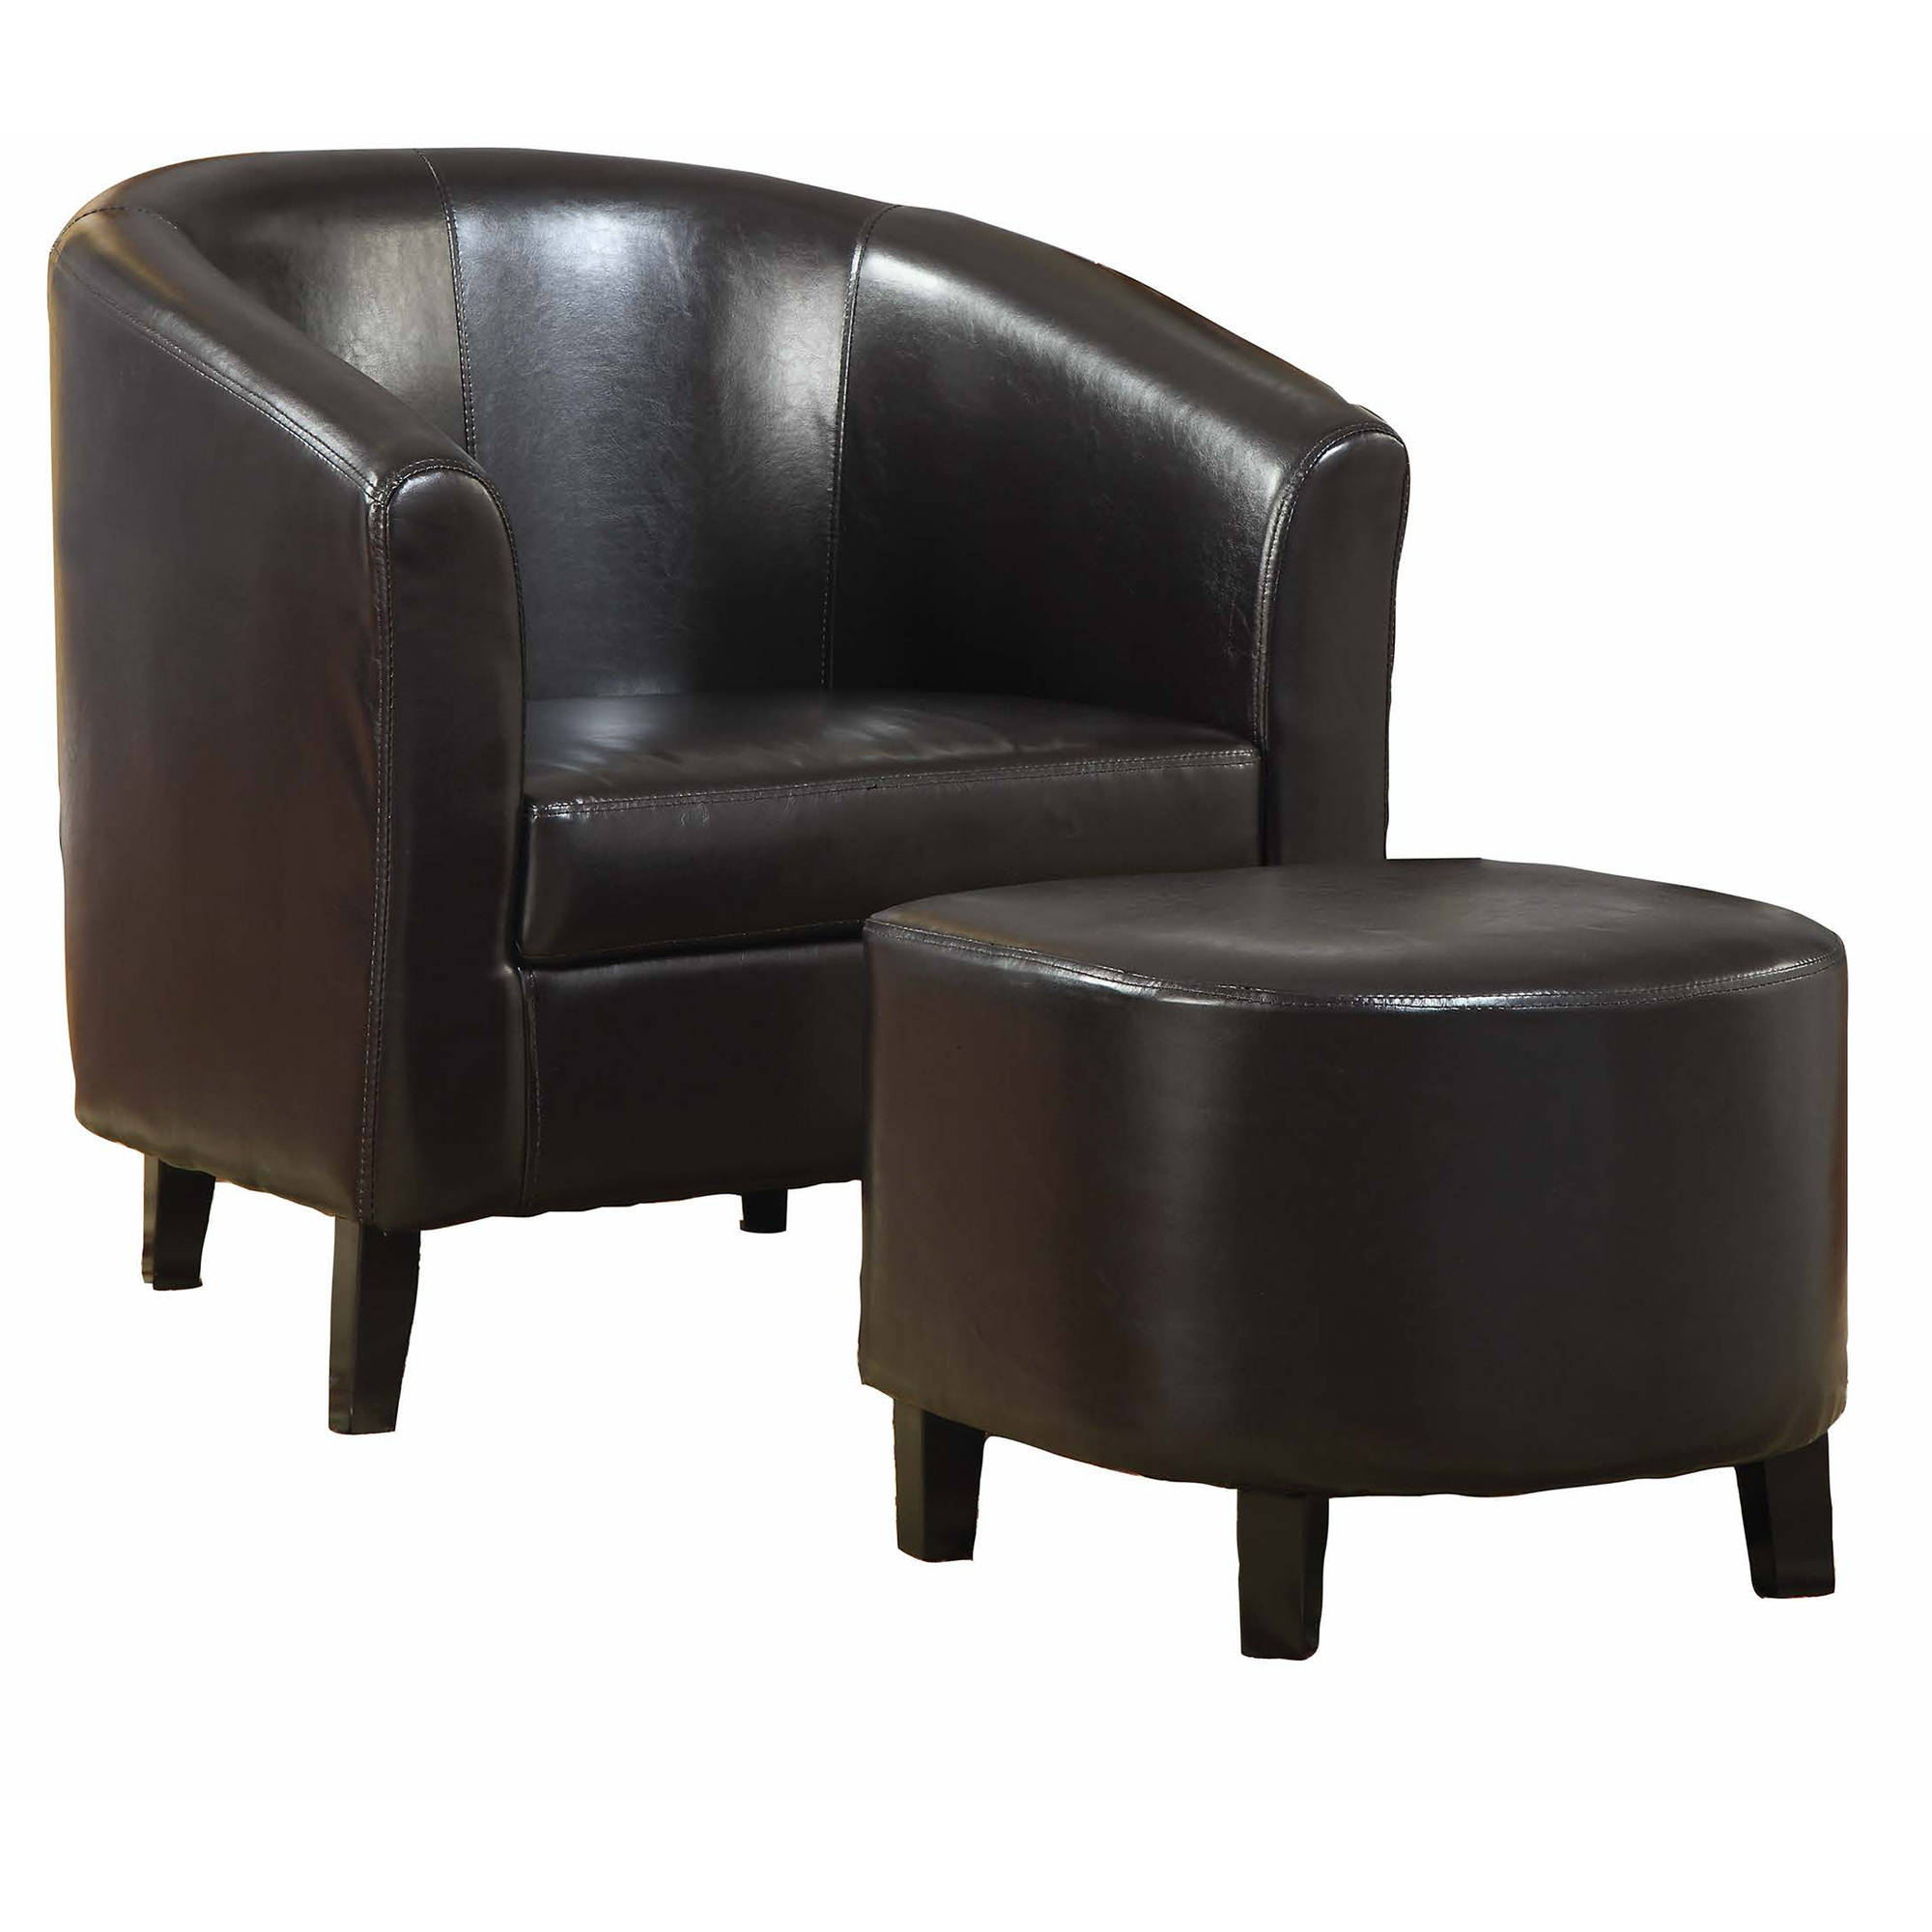 Coaster Company Accent Chair, Dark Brown, Black by Coaster Company